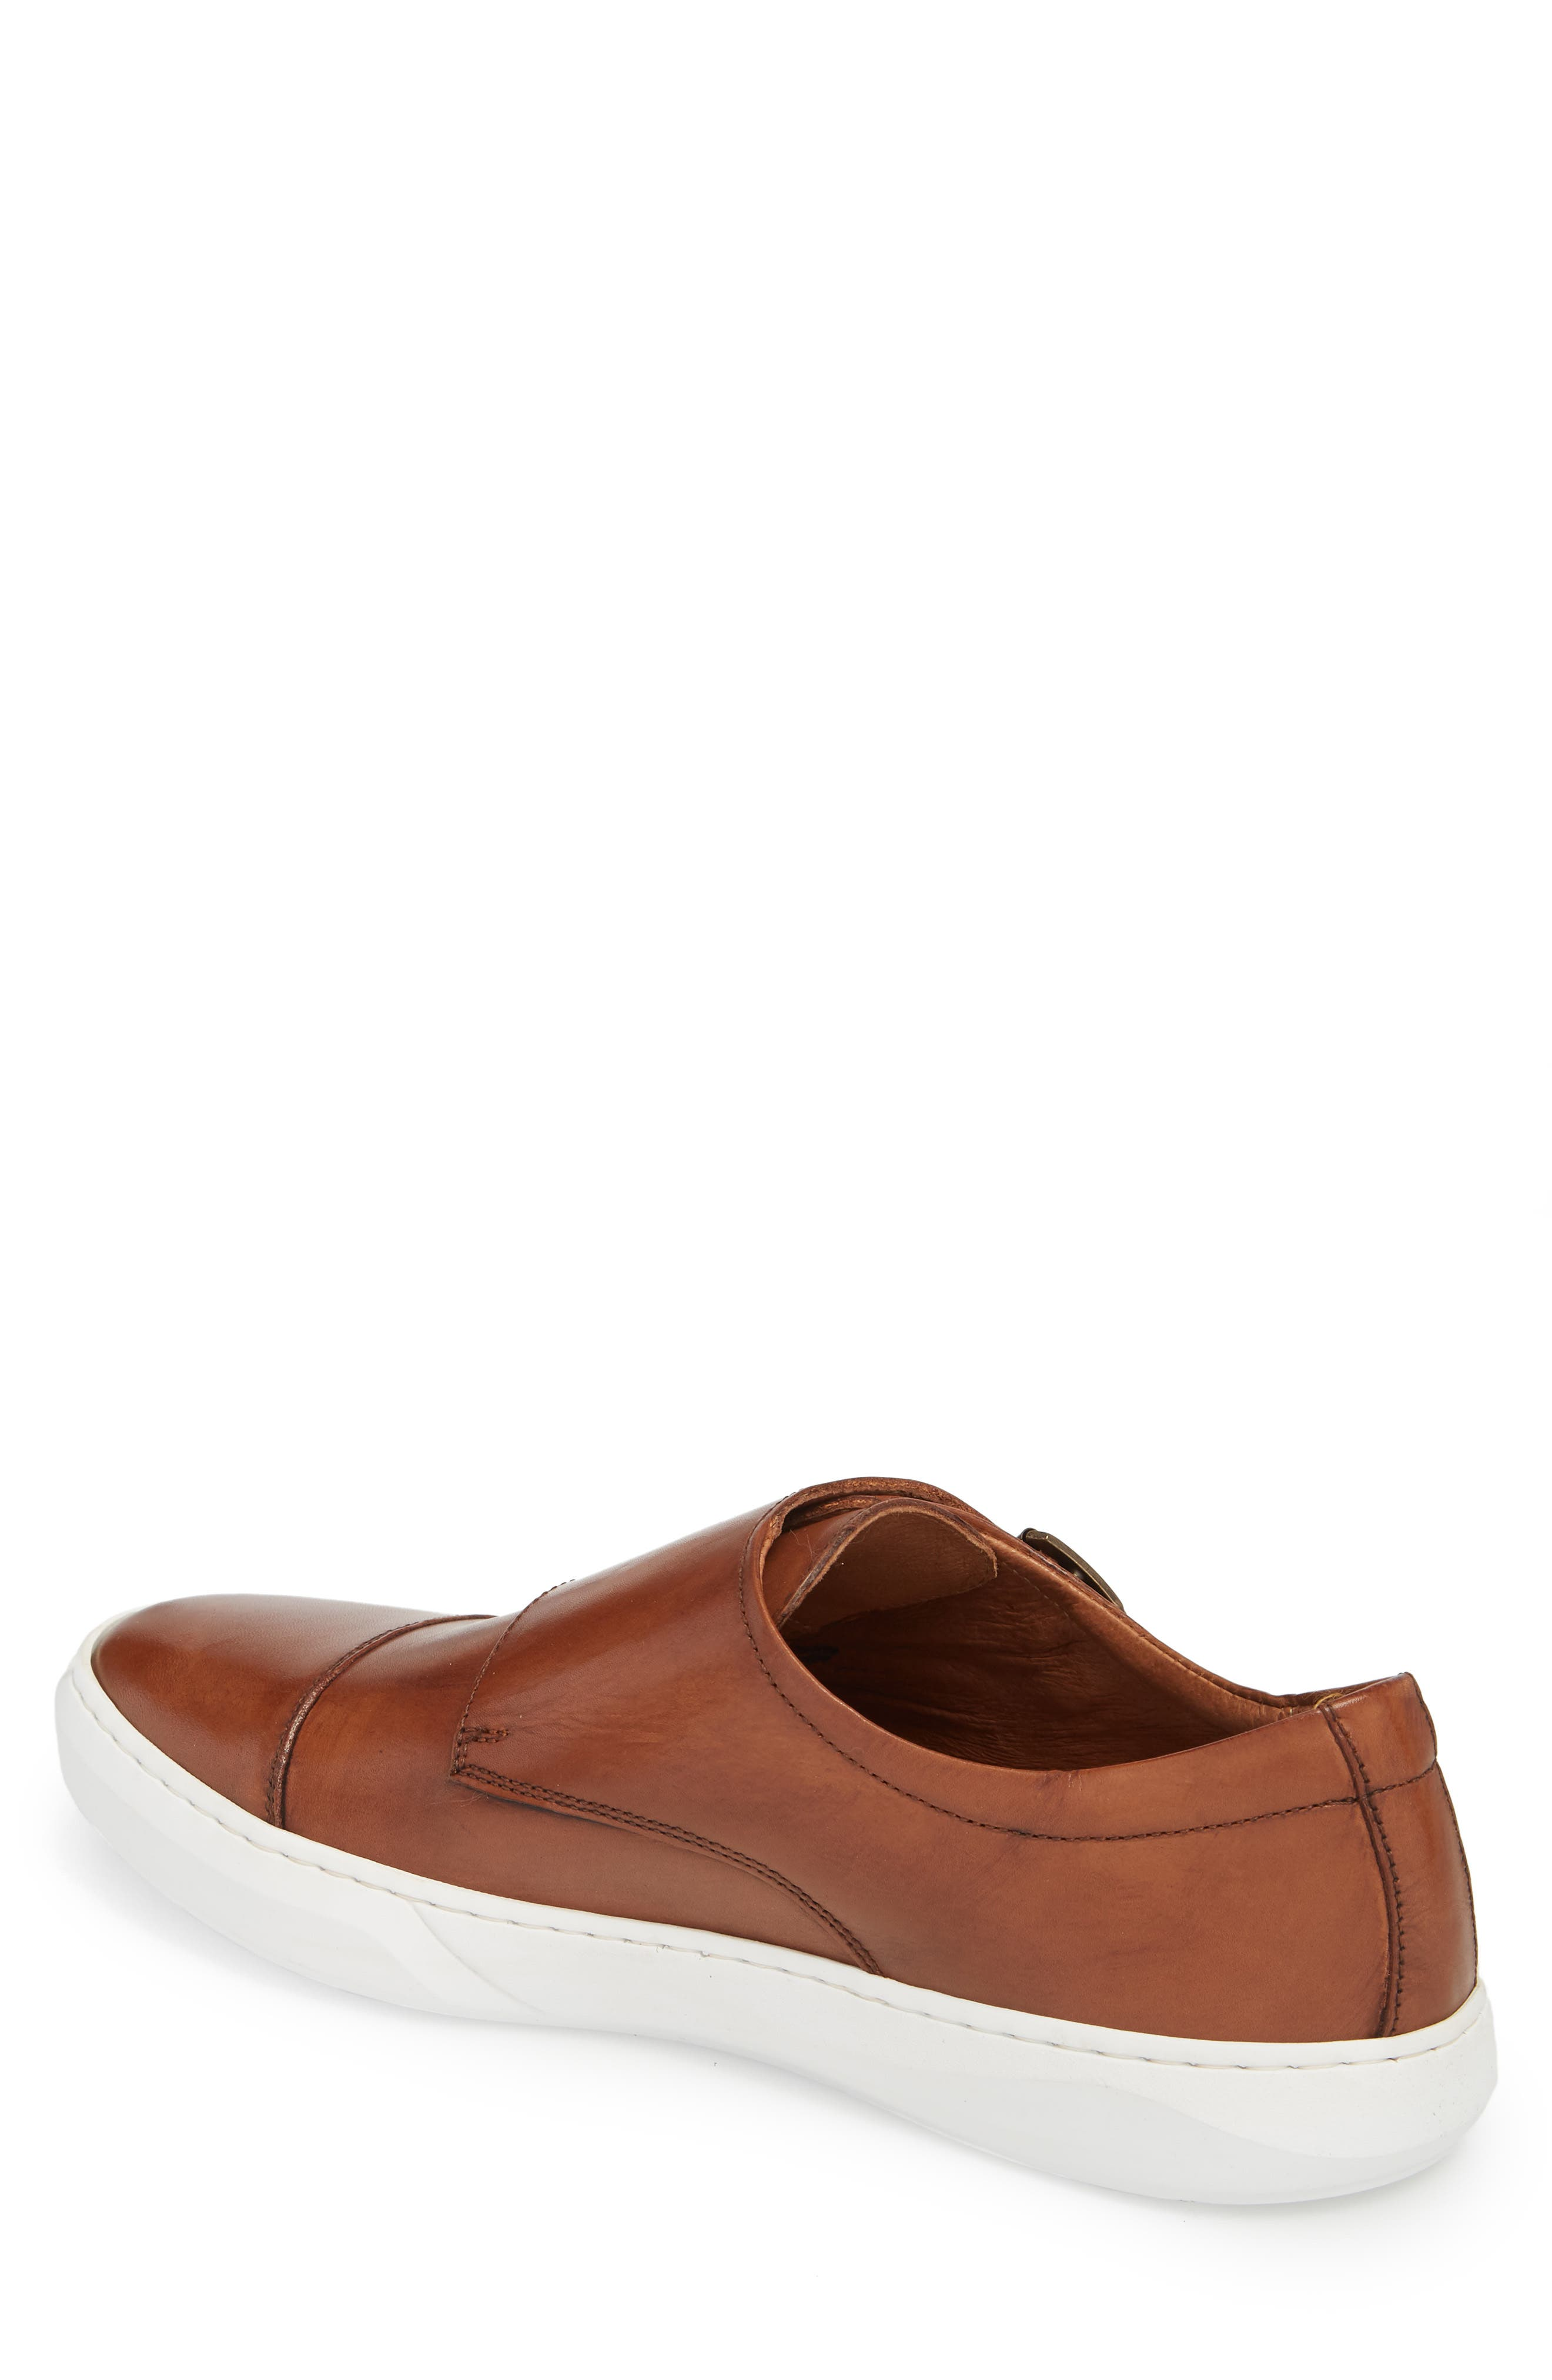 KENNETH COLE NEW YORK,                             Whyle Double Strap Monk Sneaker,                             Alternate thumbnail 2, color,                             COGNAC LEATHER